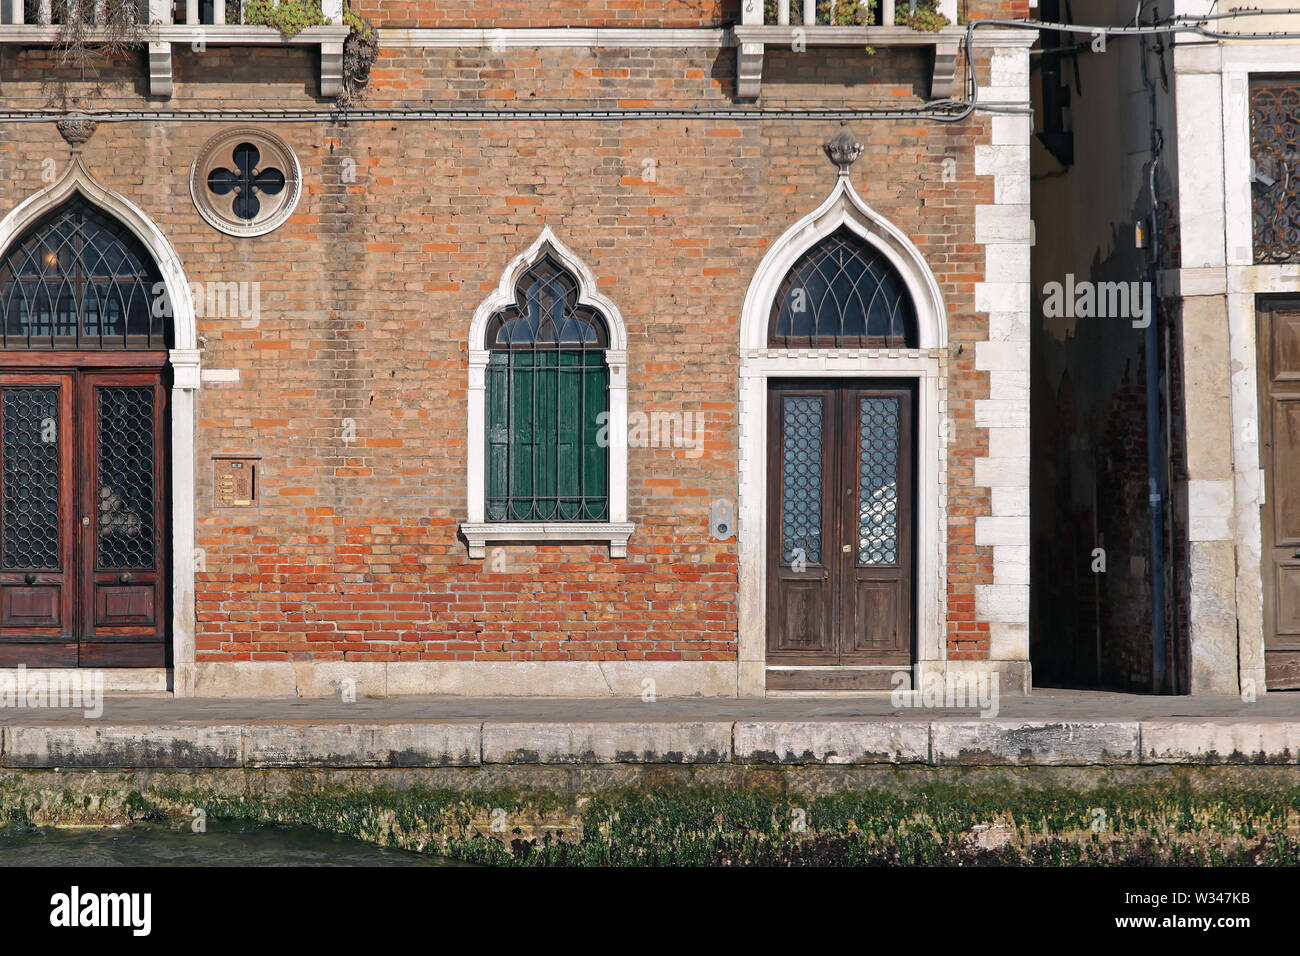 Arch Door and Window at House in Venice Italy - Stock Image